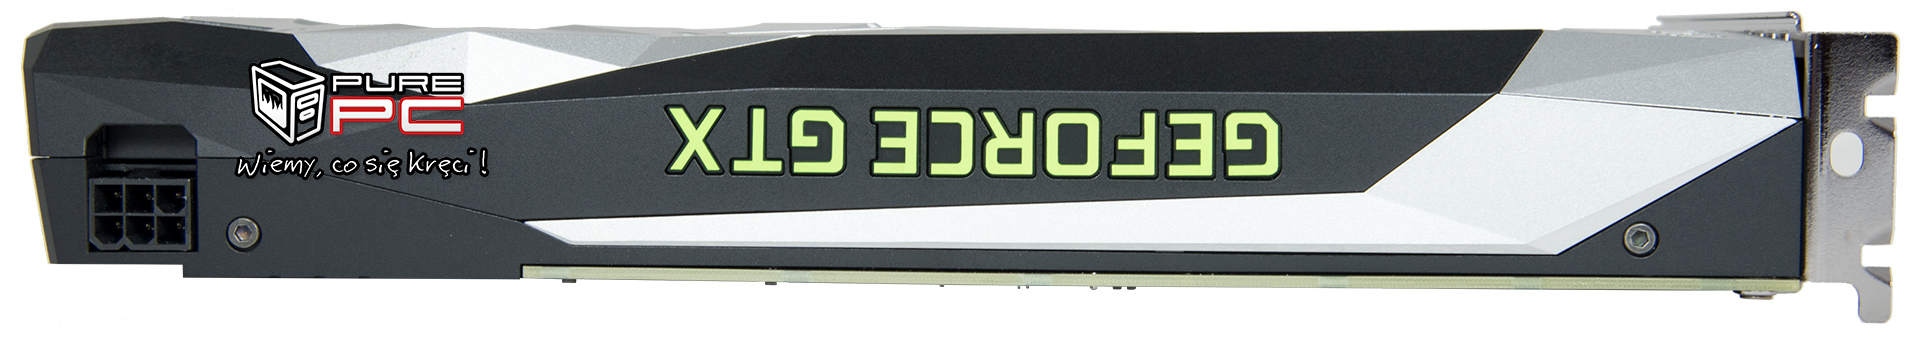 nvidia geforce gtx 1060 purepc 4